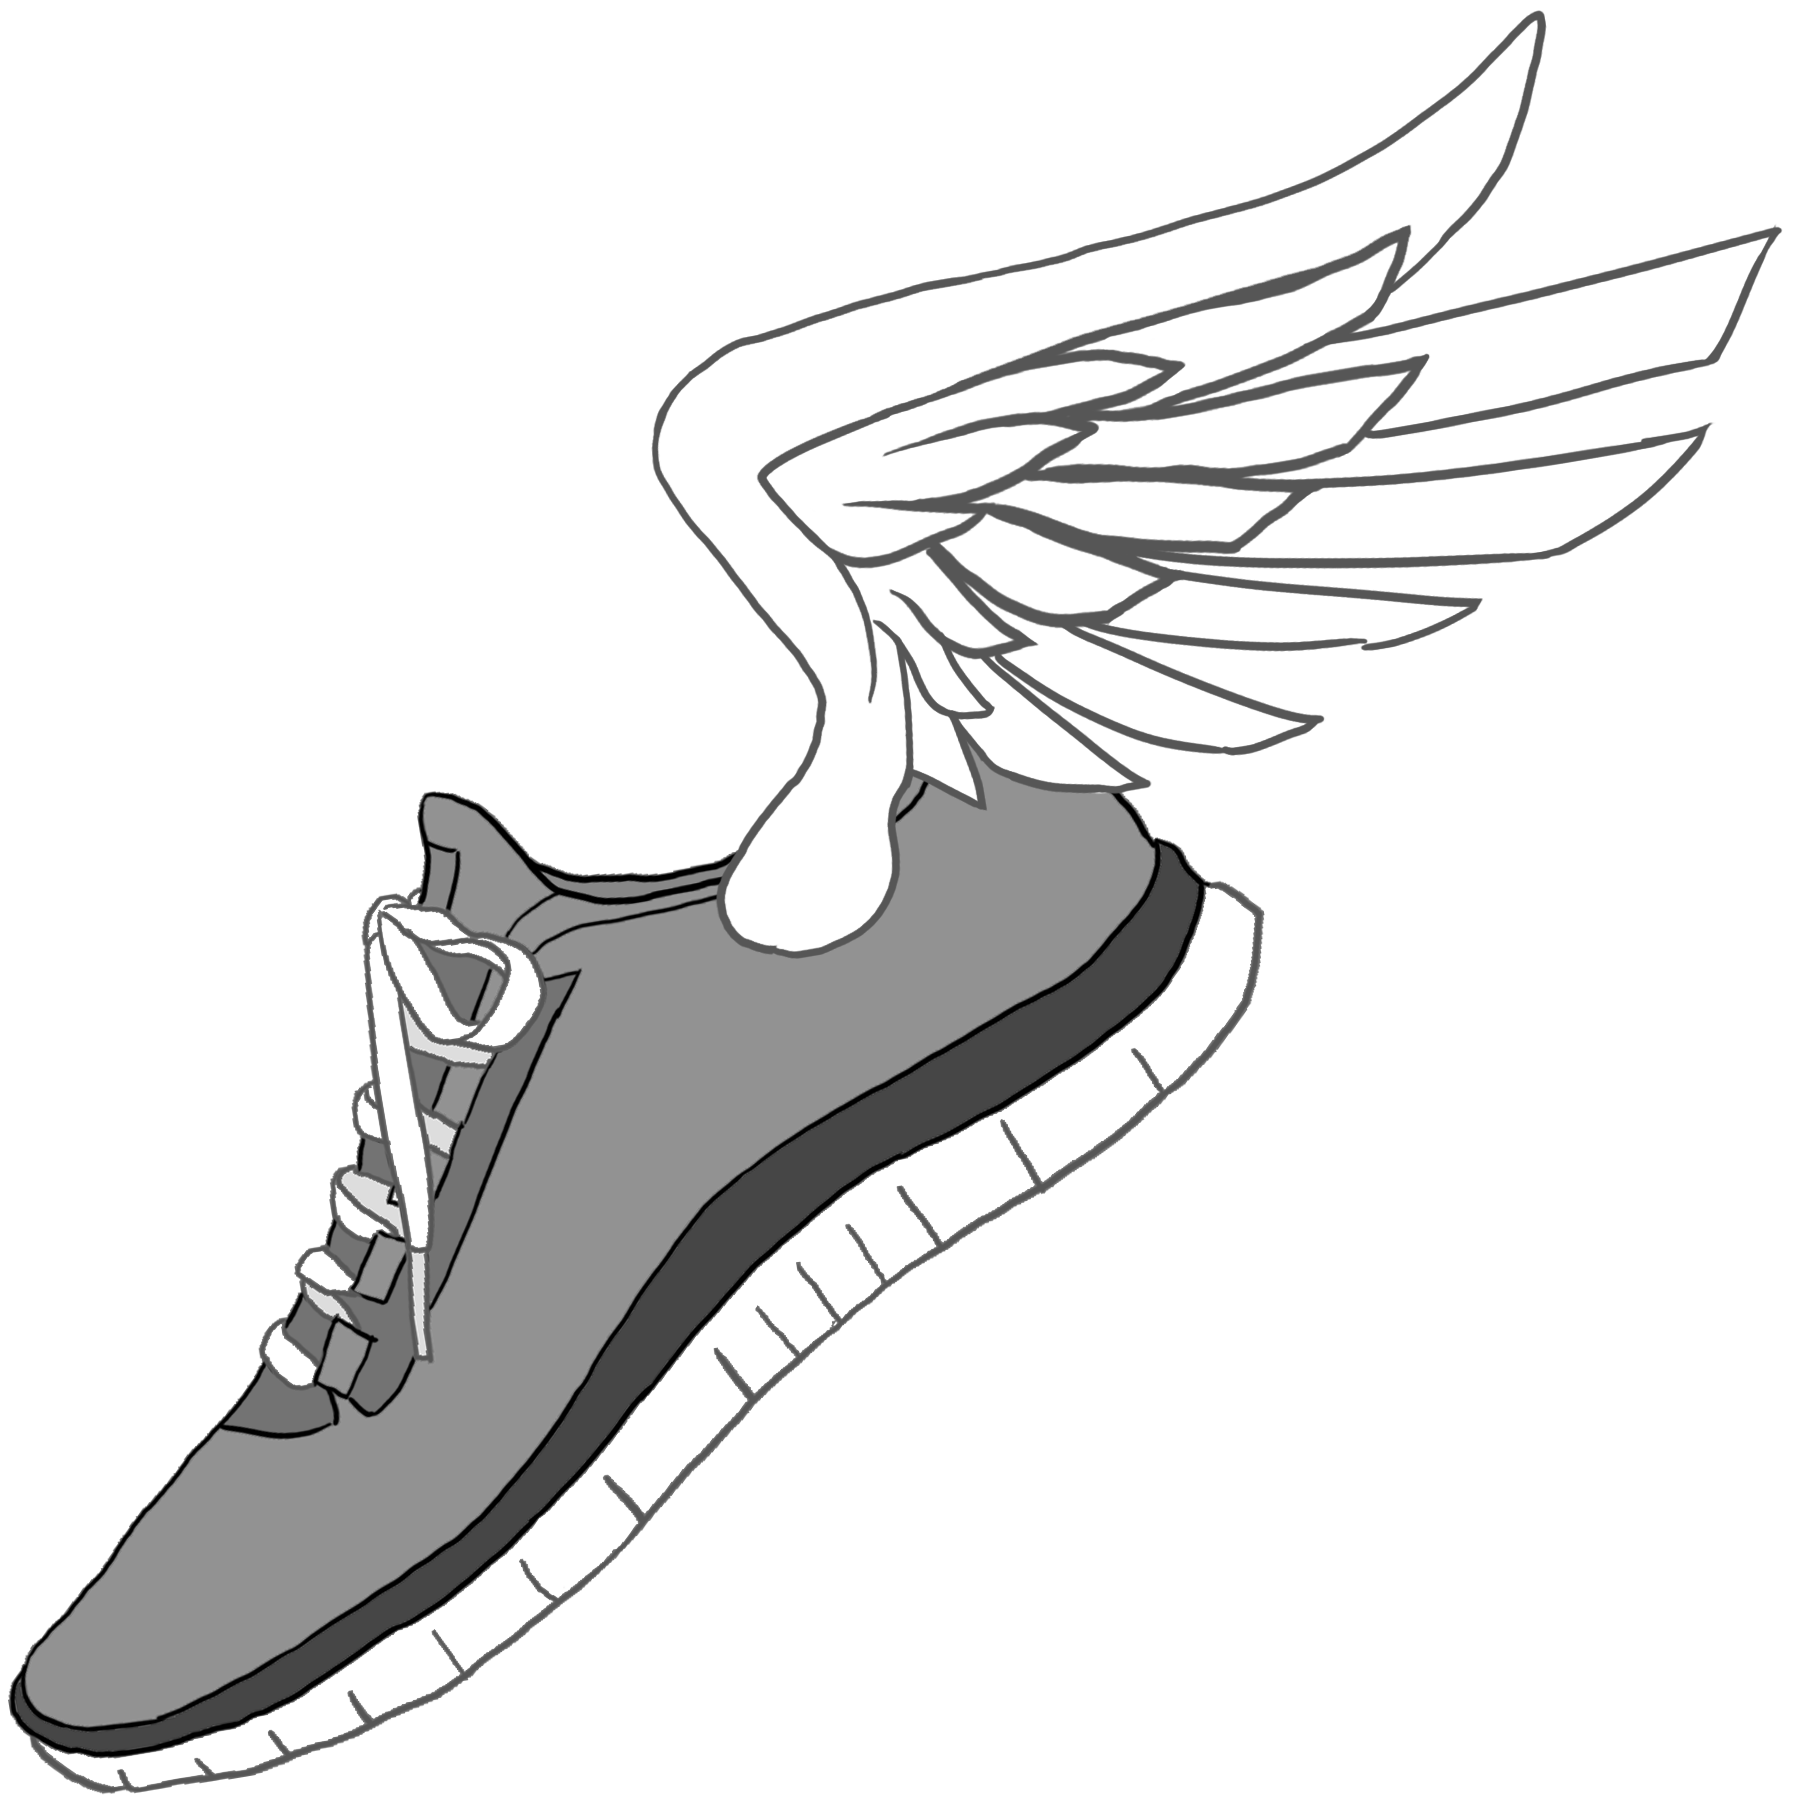 1800x1800 Gym Shoes Clipart Cross Country